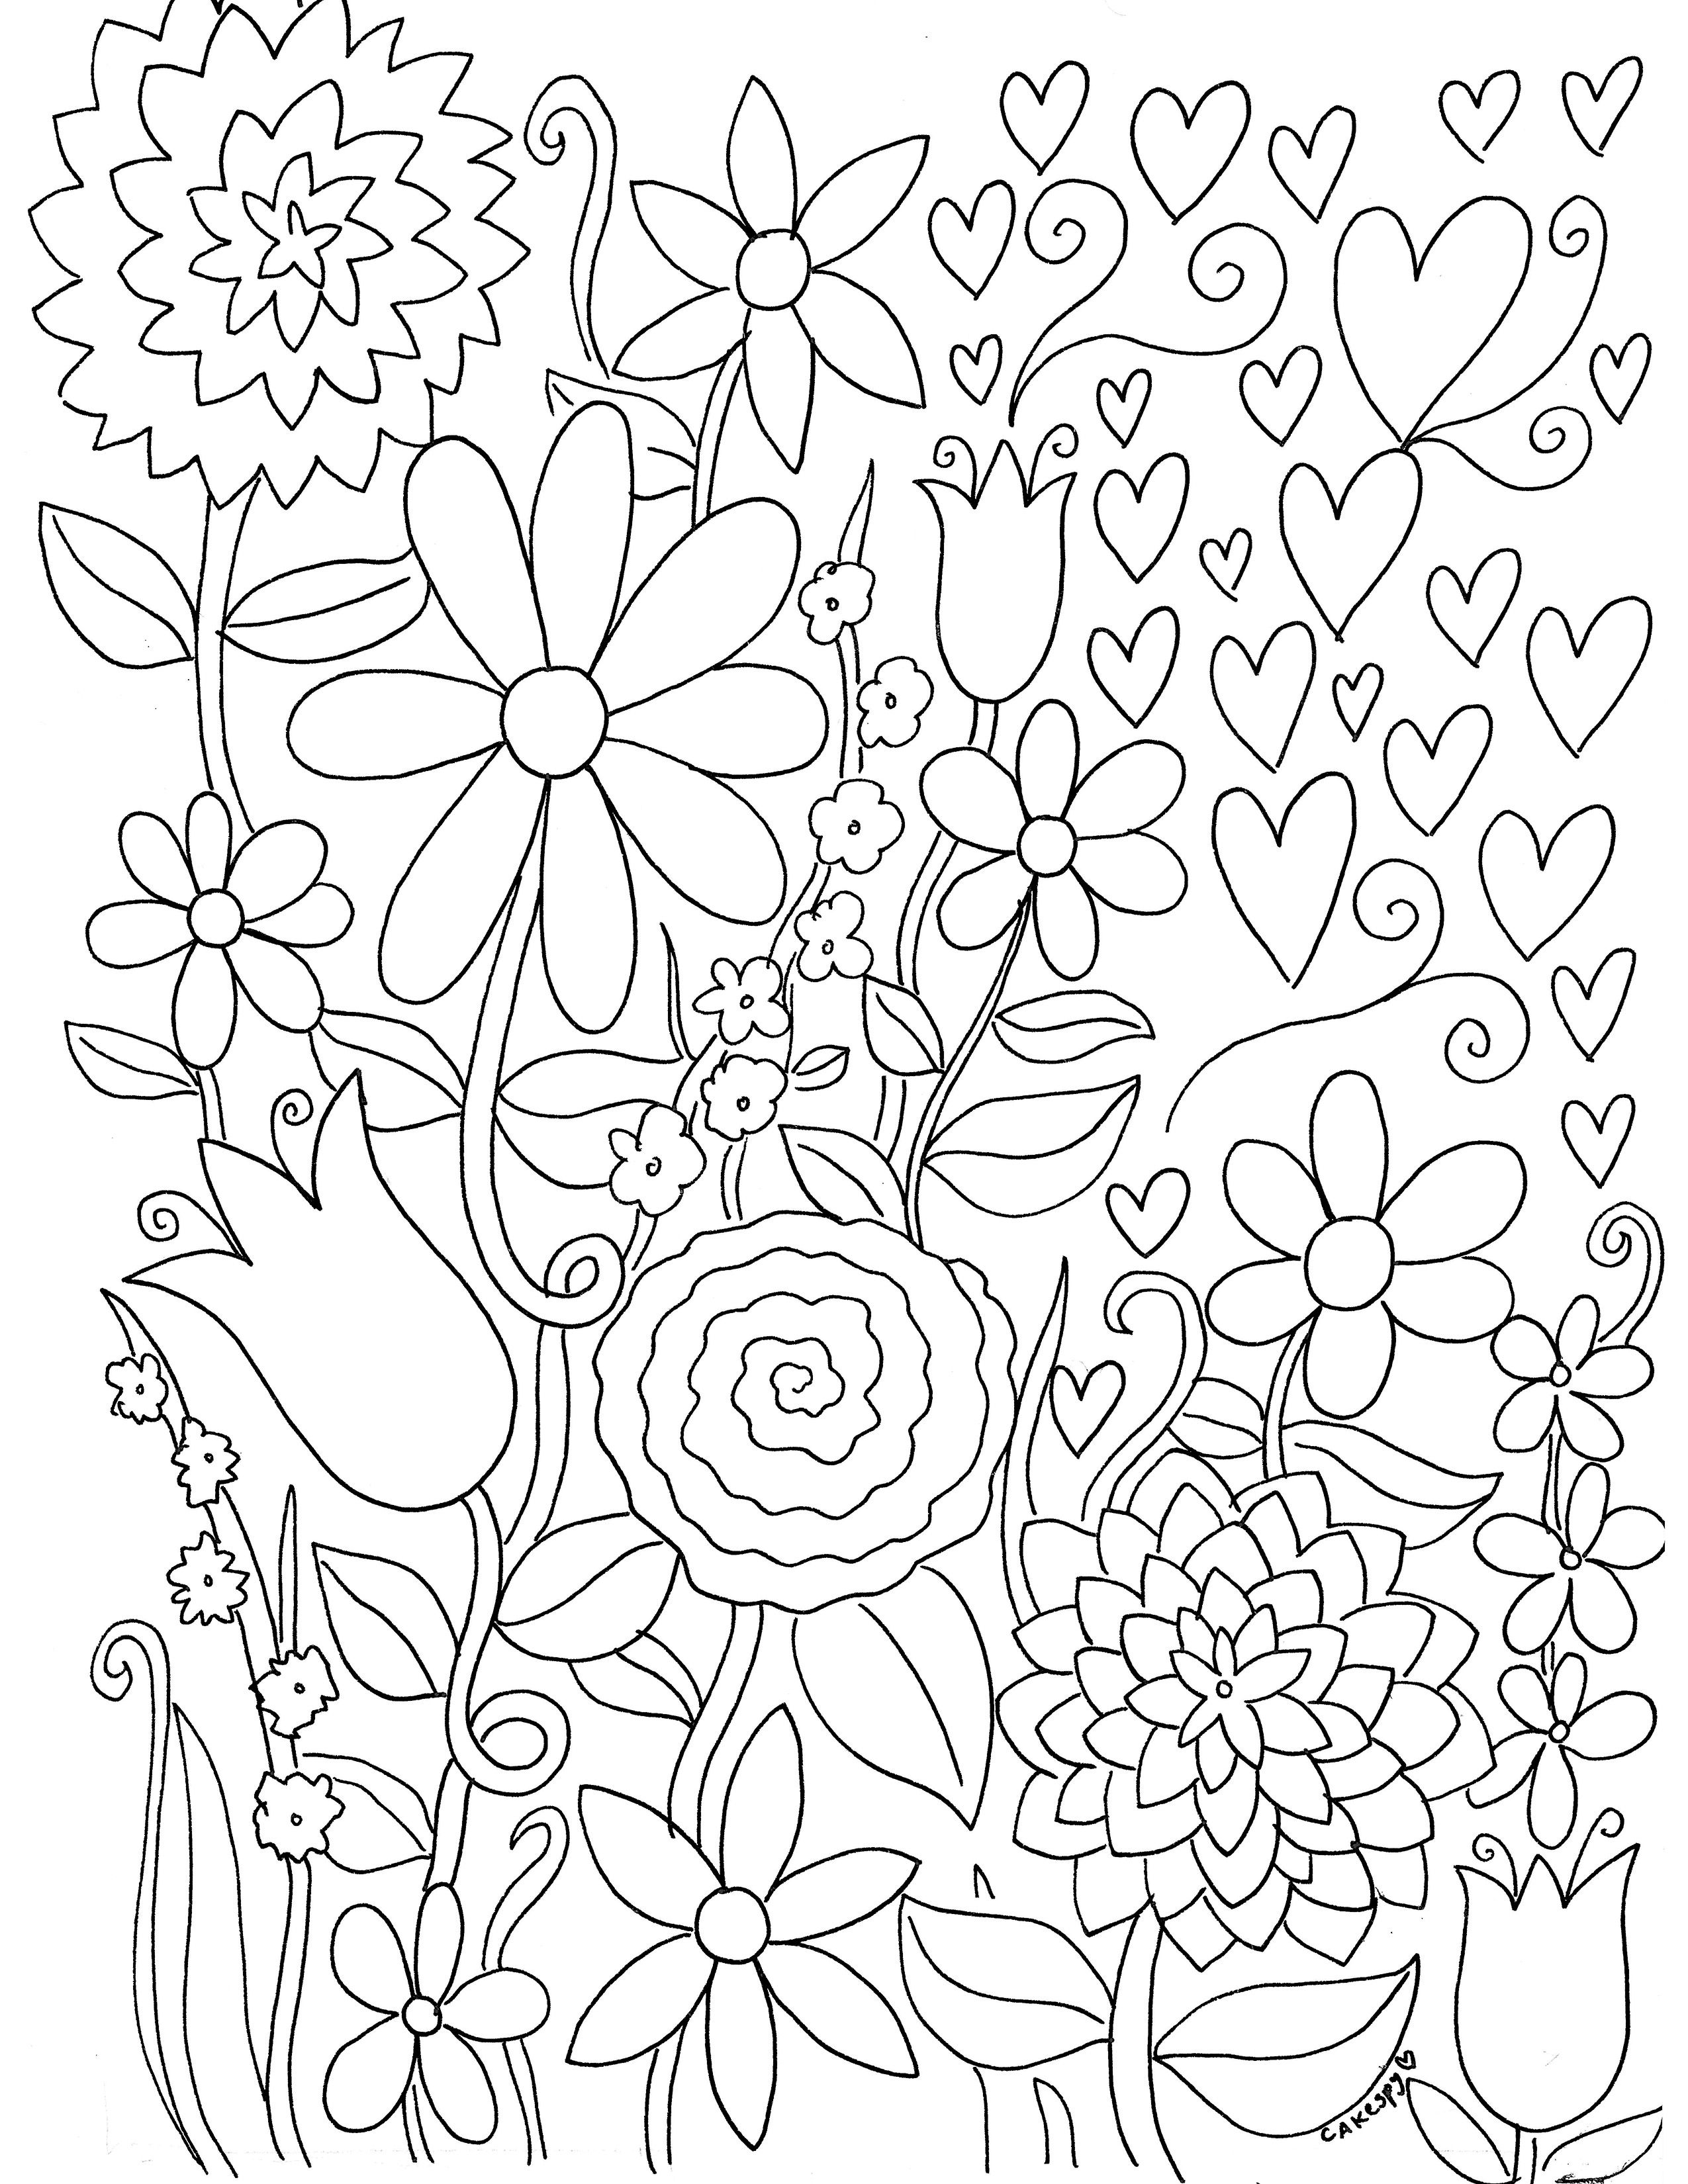 FREE Paint by Numbers for Adults Downloadable | *PRINTABLE ART